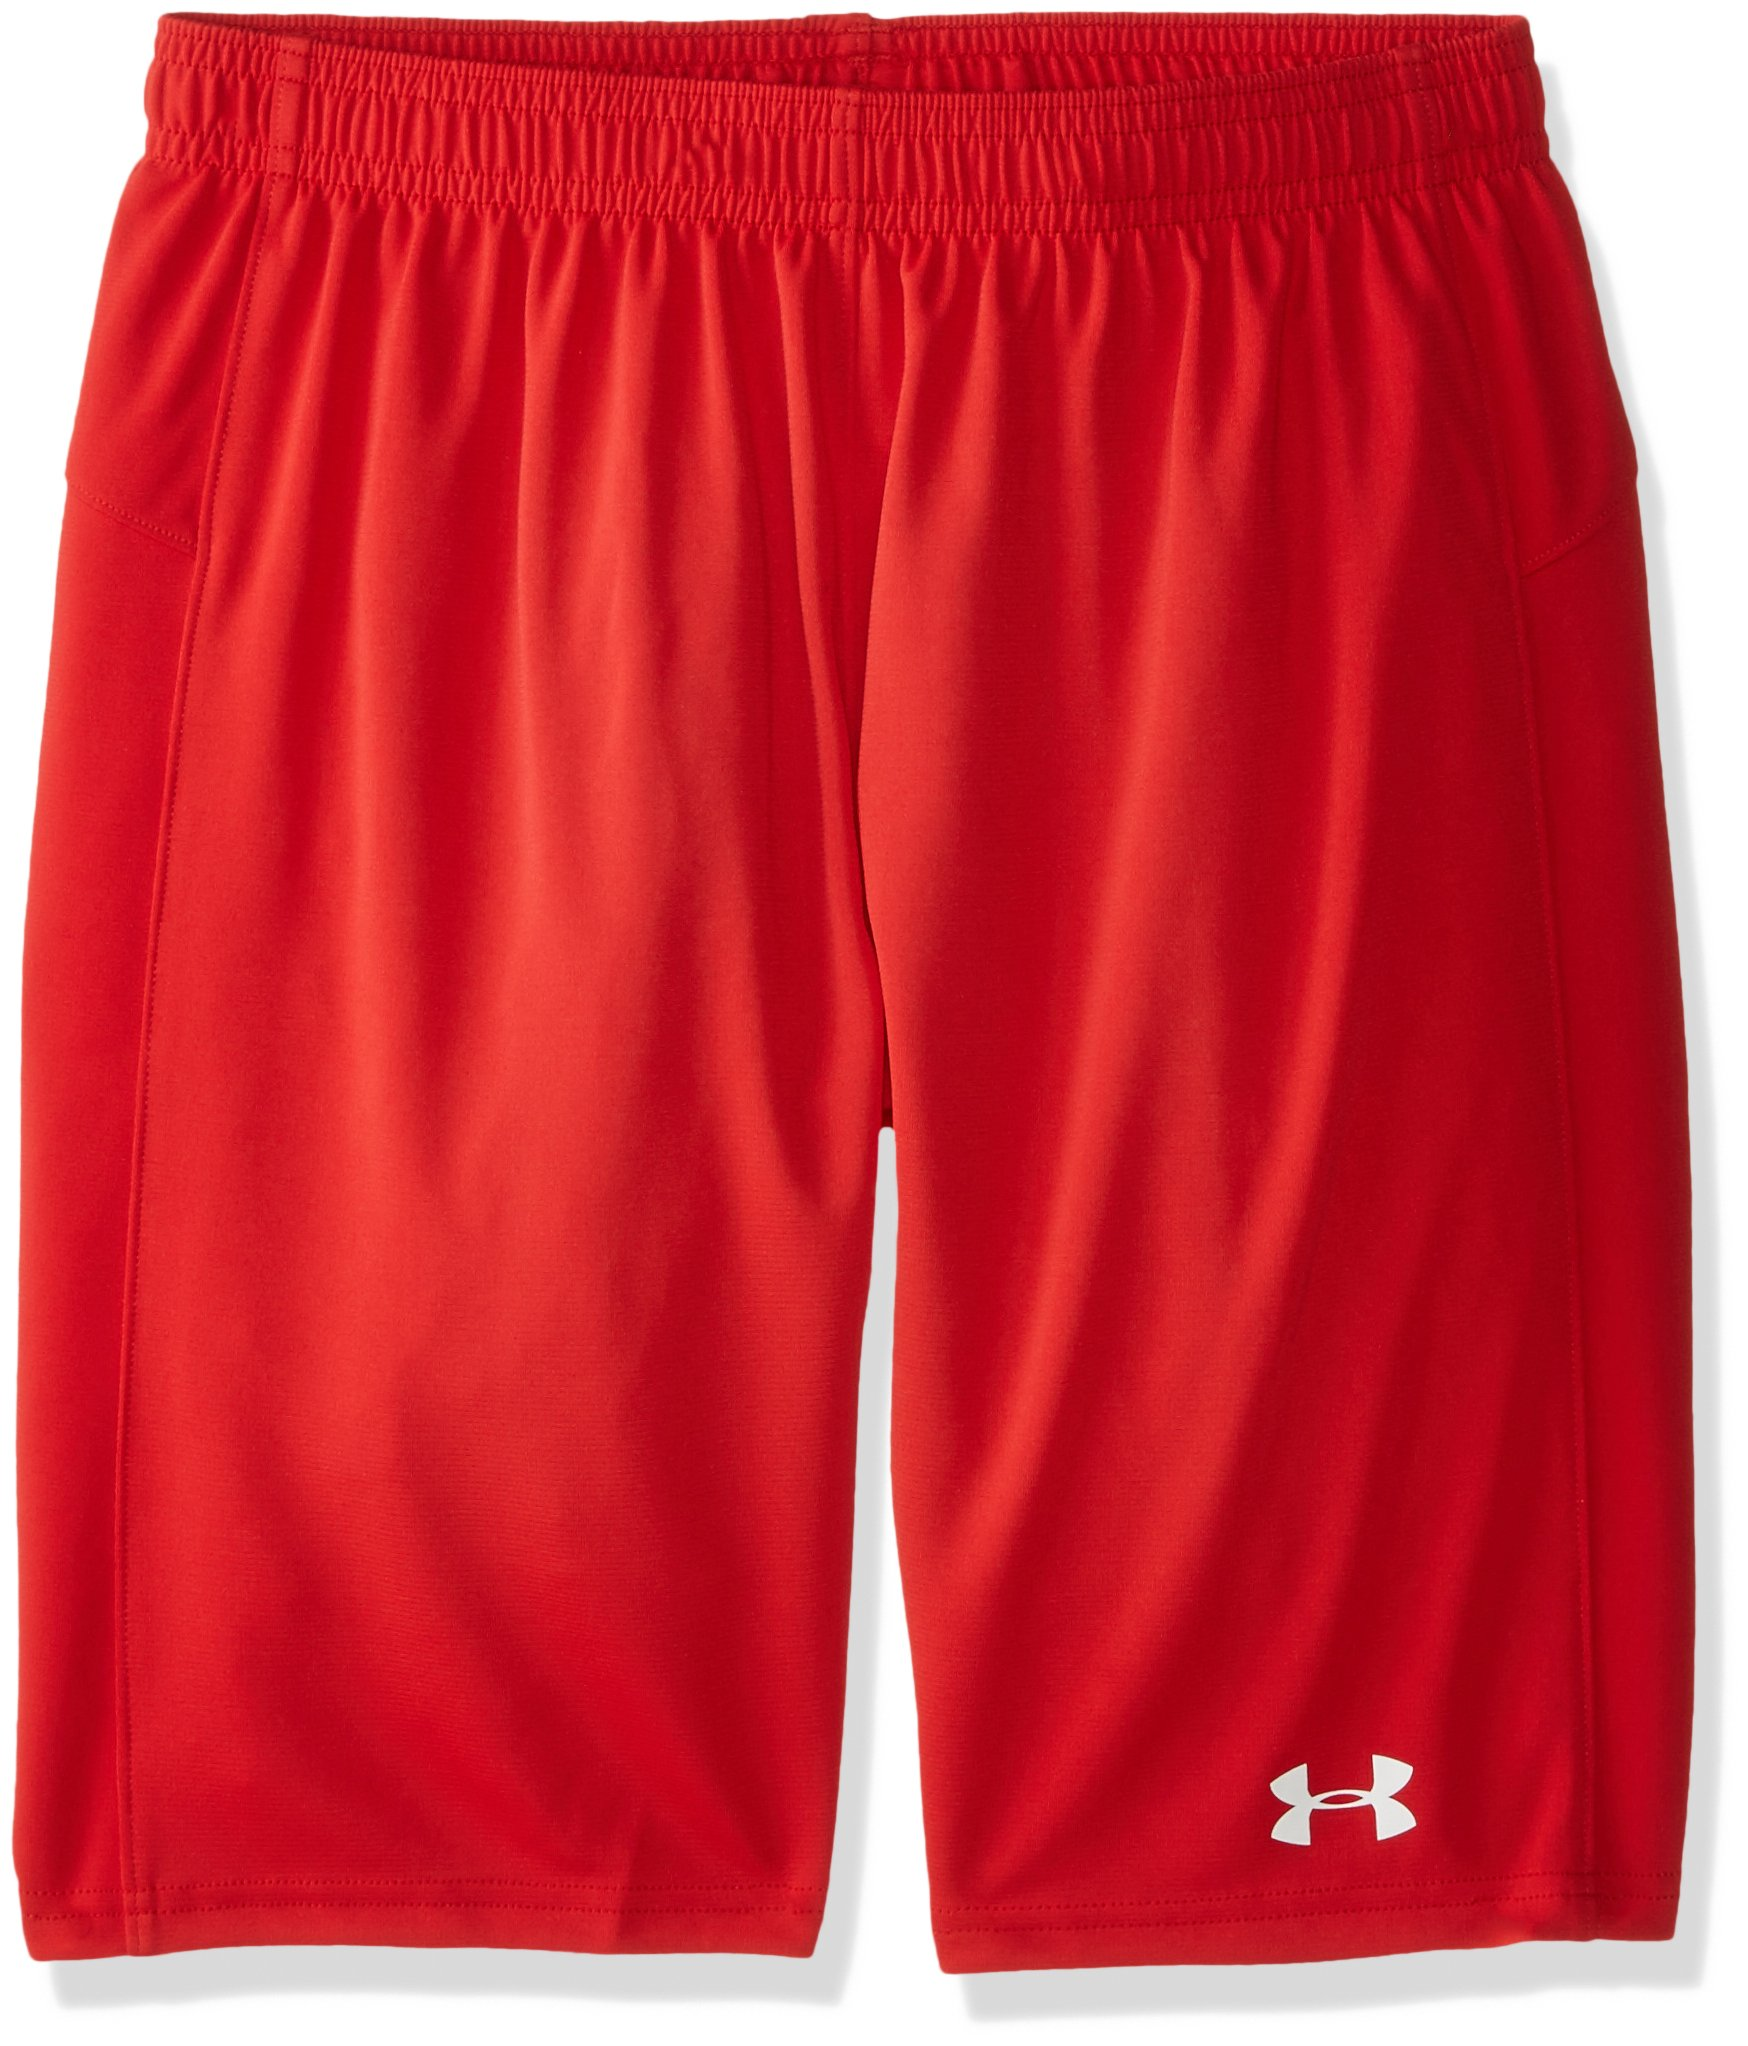 Under Armour Boys' Golazo Soccer Shorts, Red (600)/White, Youth Large by Under Armour